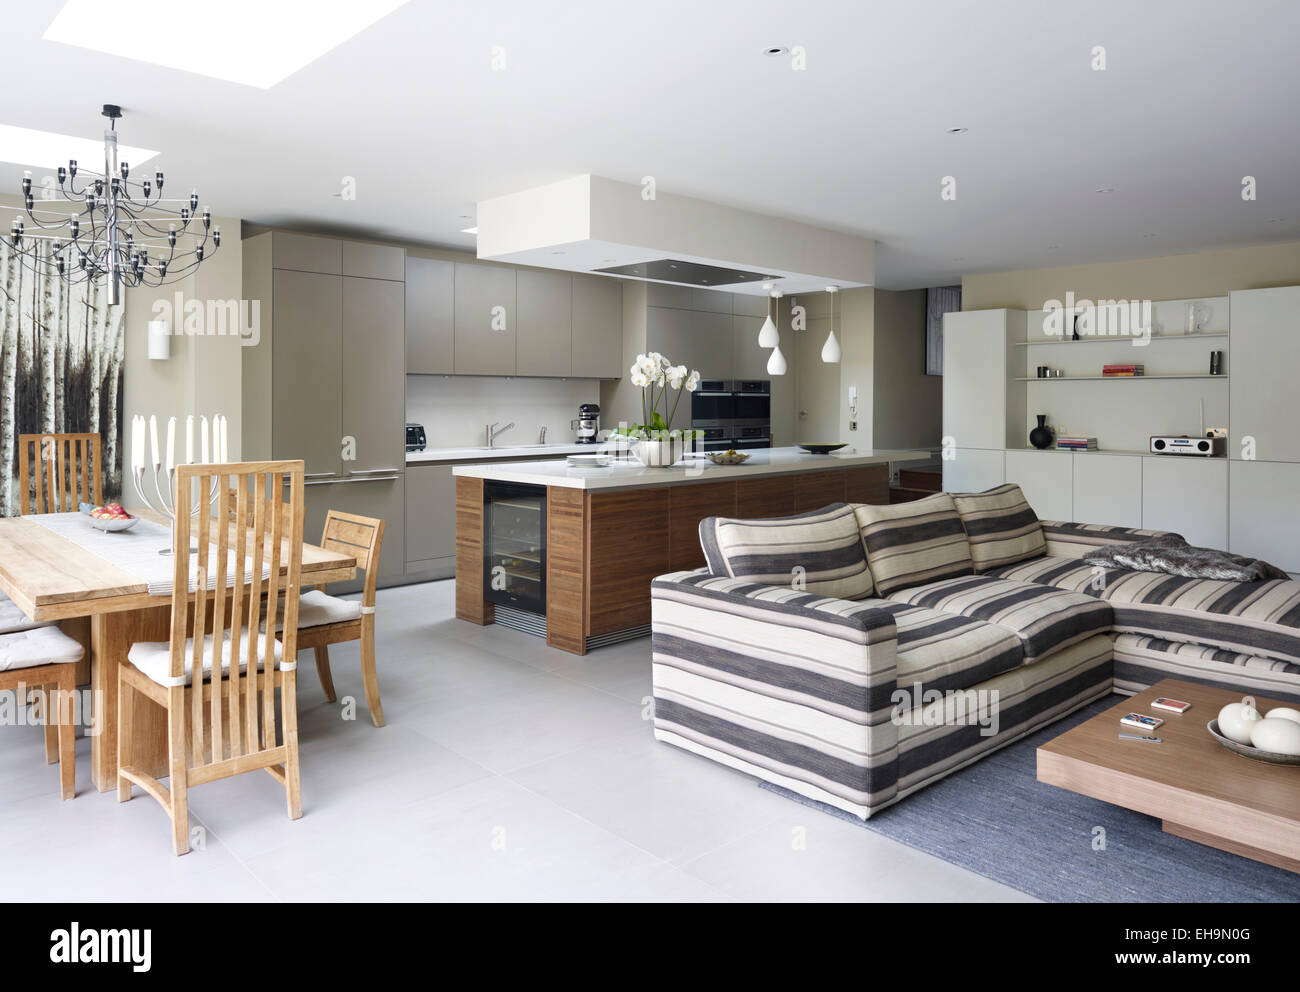 modern open plan kitchen, dining area and living area with striped